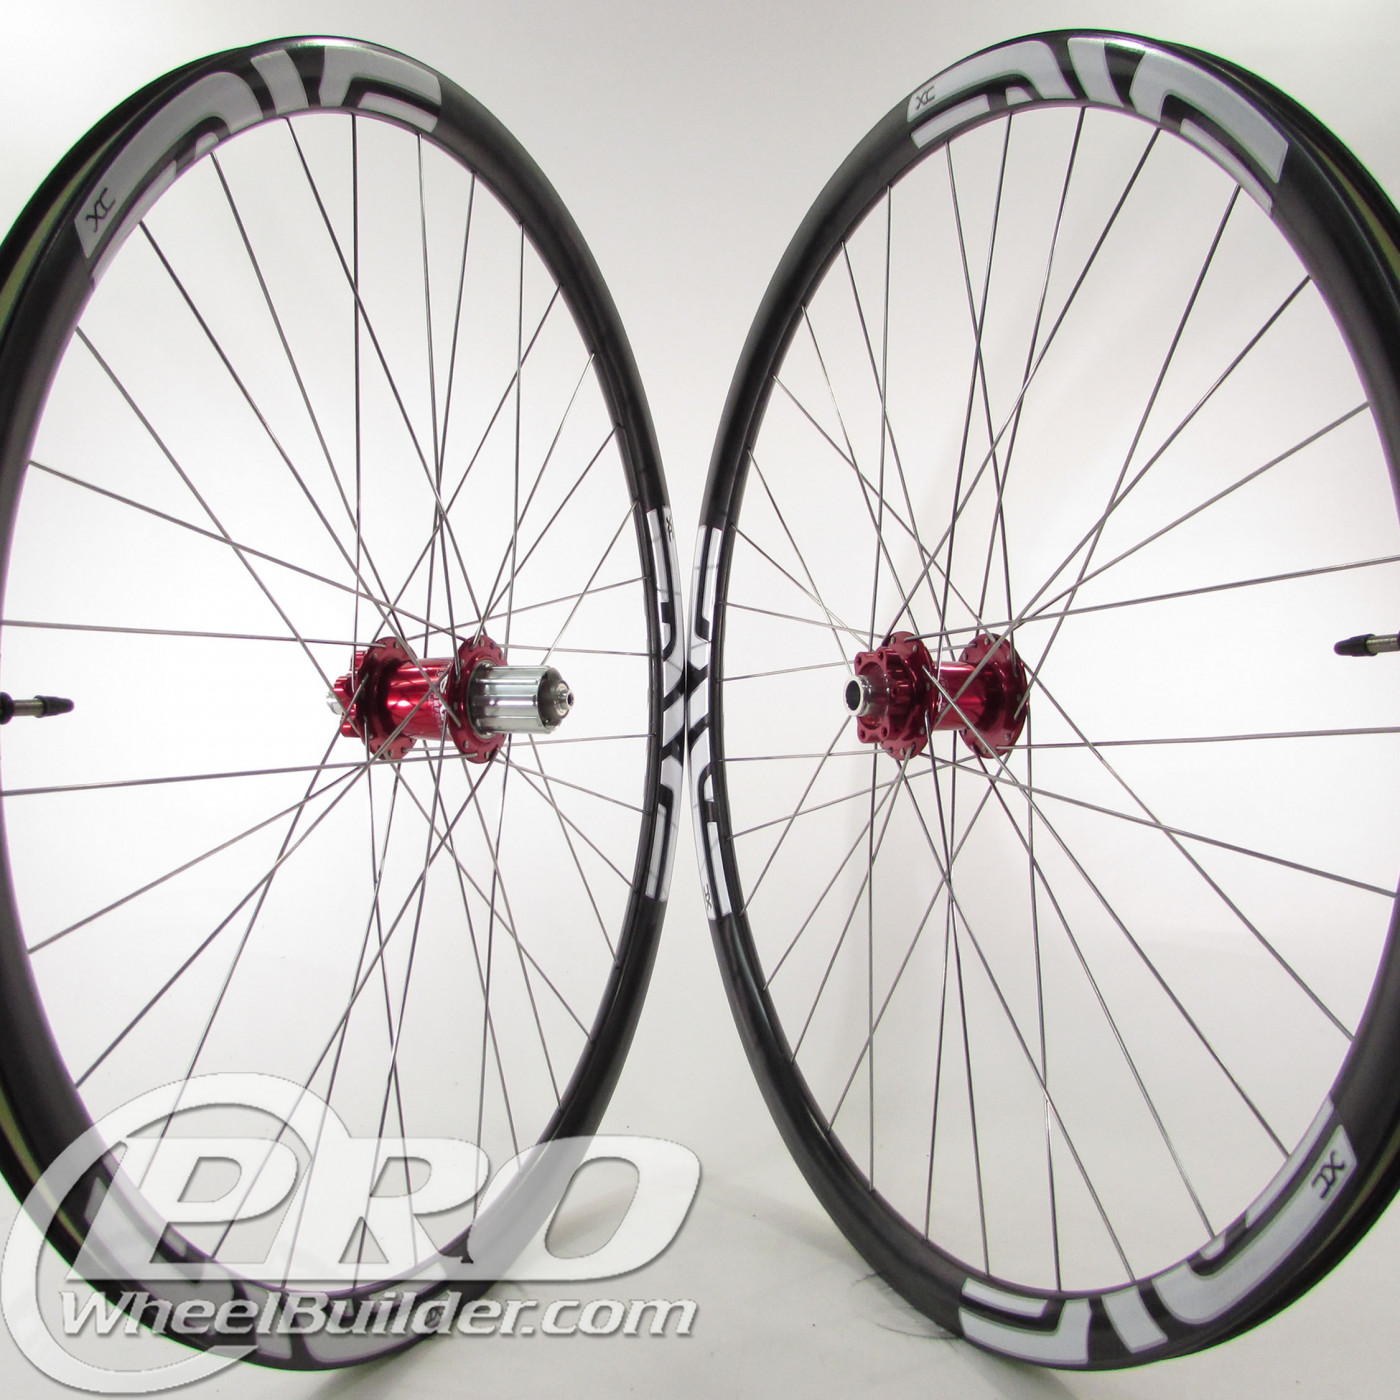 enve xc blk rims chris king iso red hubs sapim leader silver spokes 1